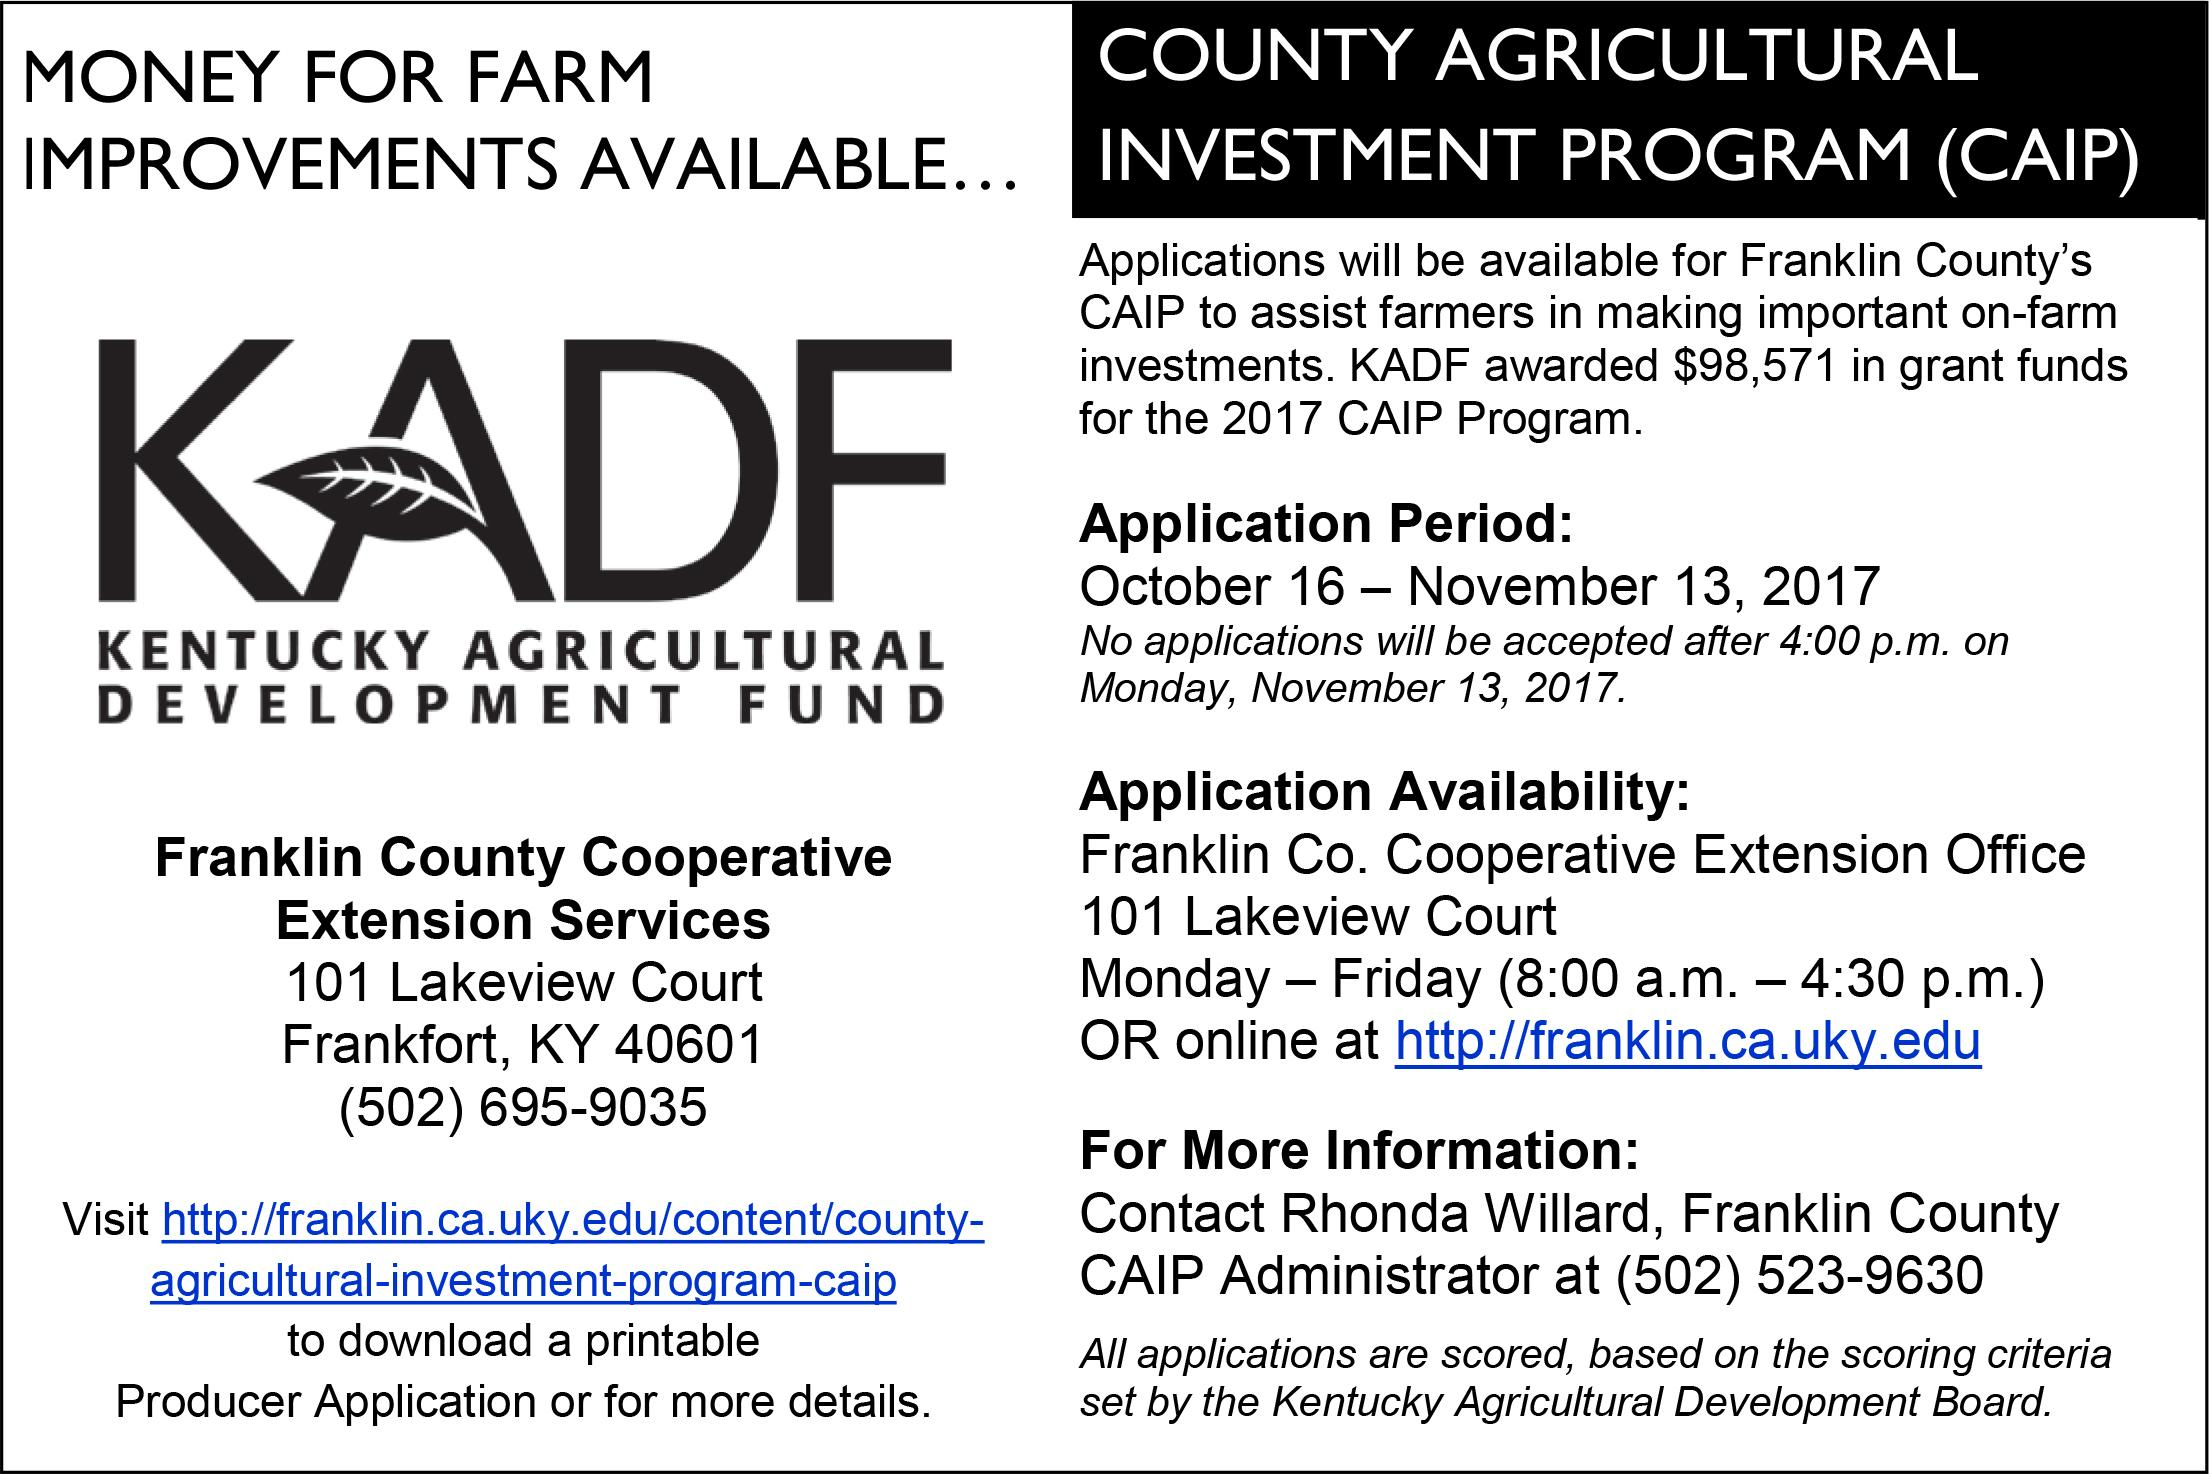 County Agricultural Investment Program (CAIP)   Franklin County